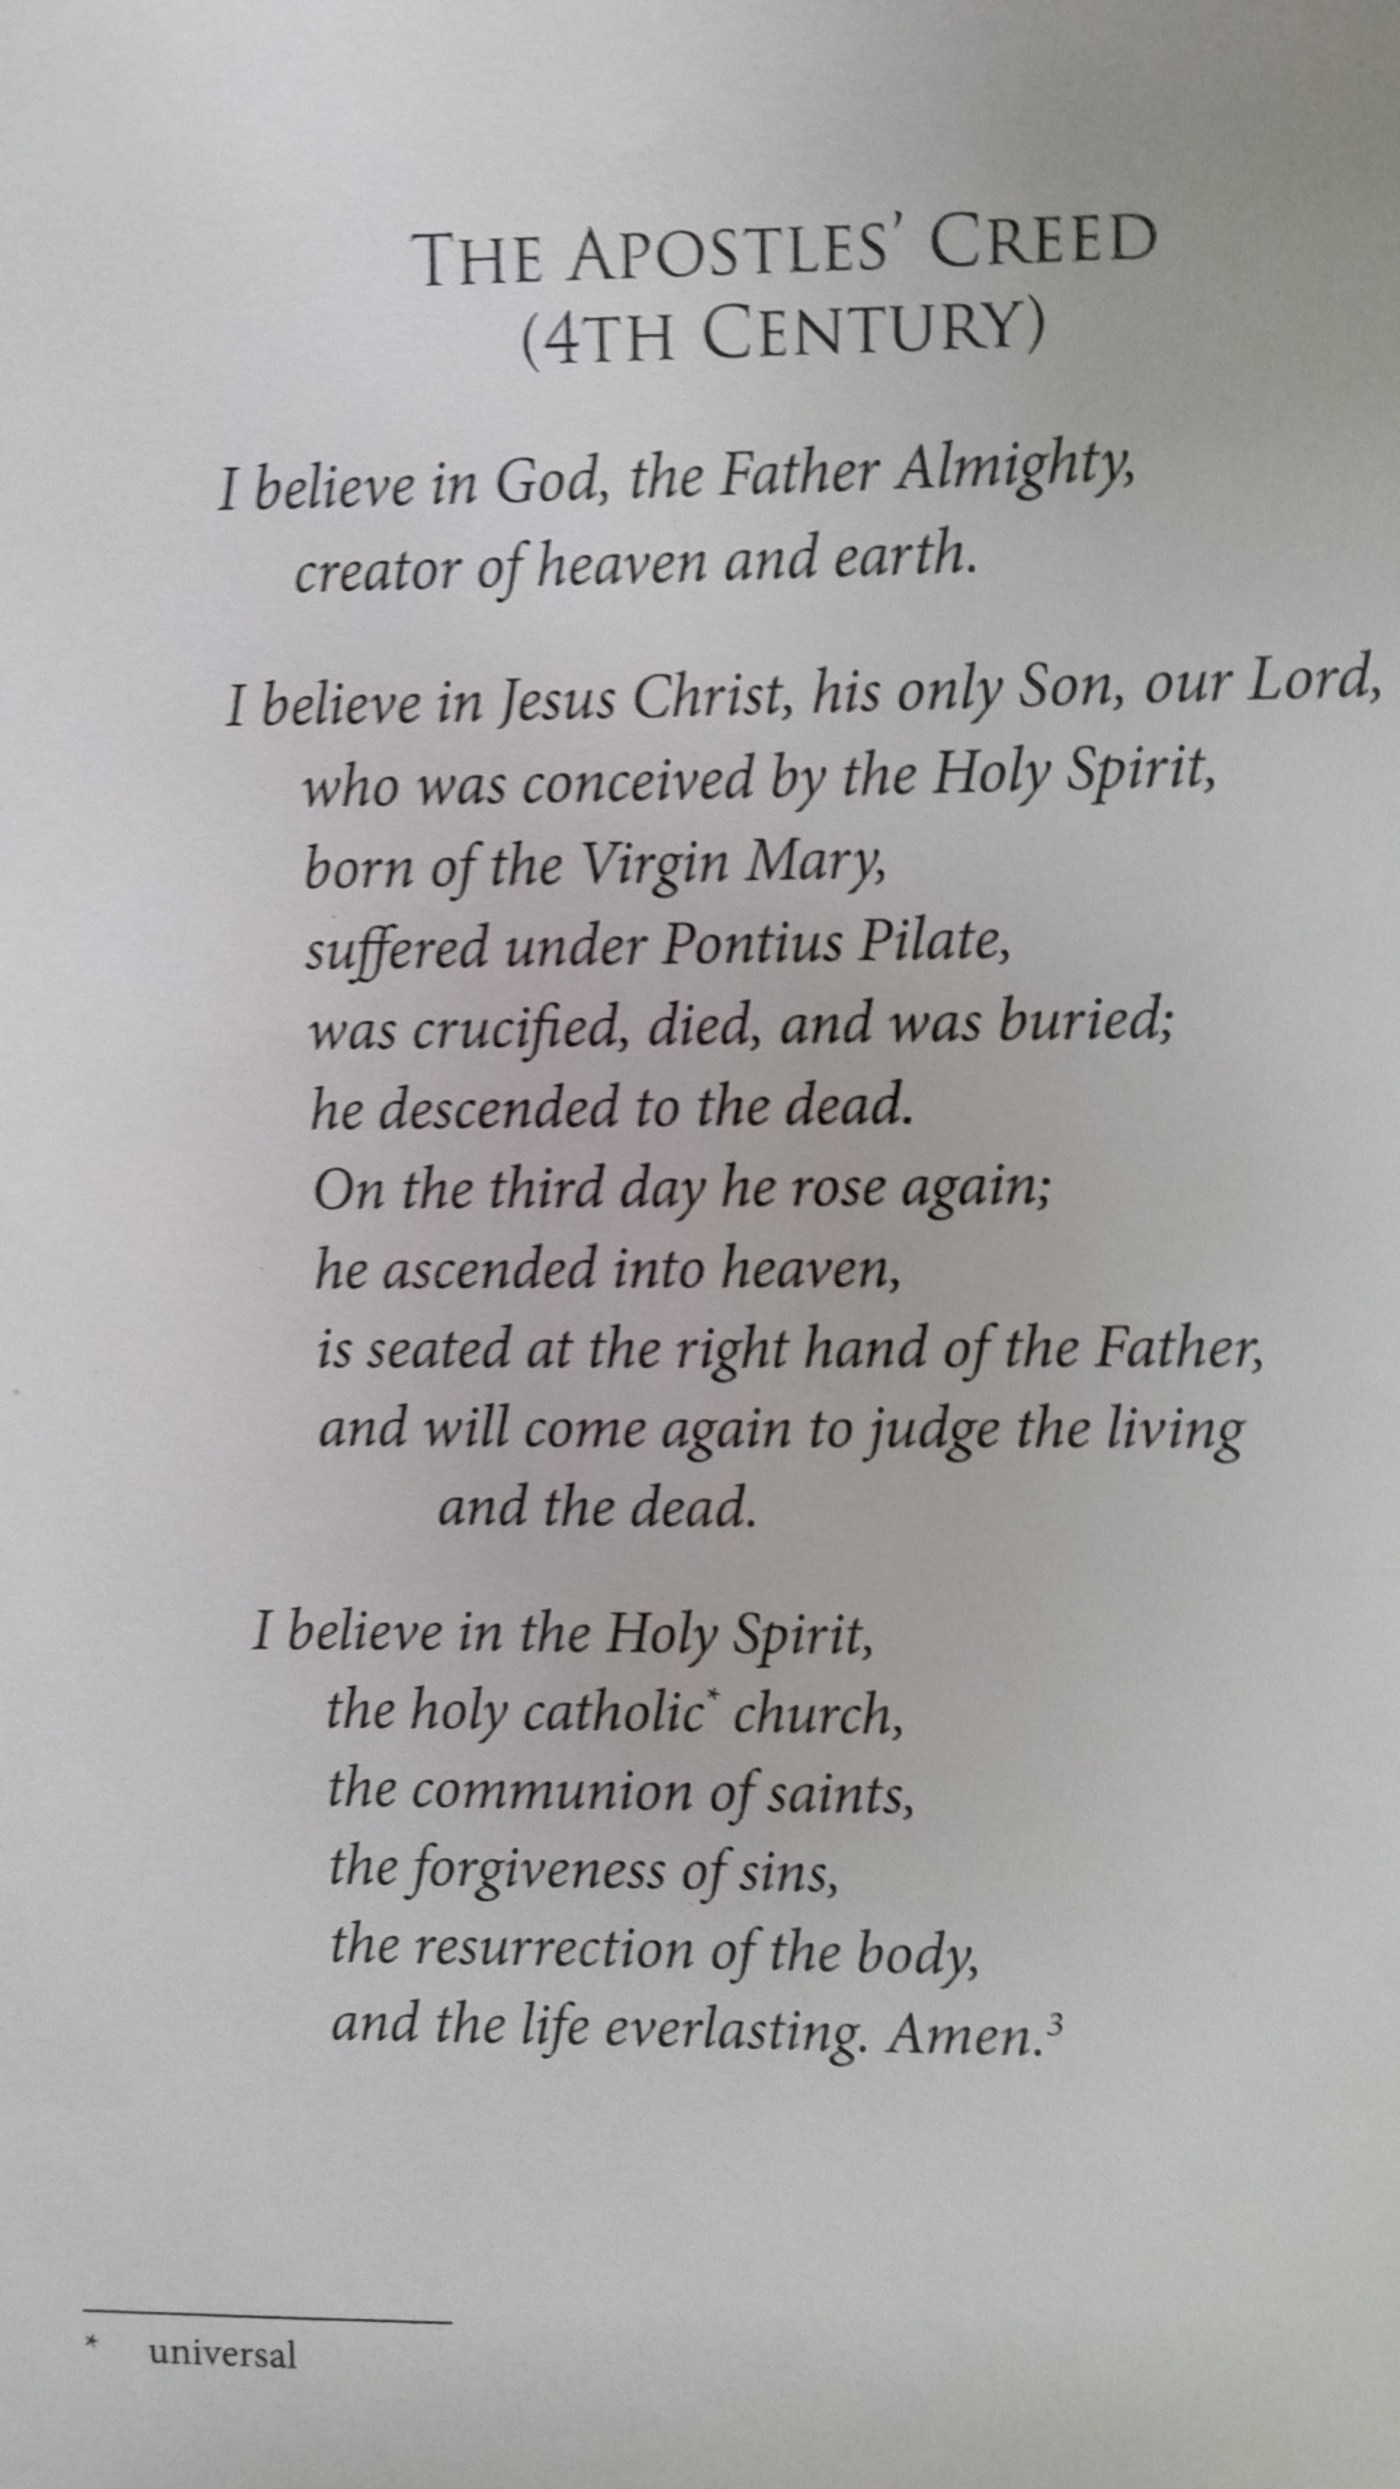 """The Apostles' Creed – Sunday May 14th Trinity Church, Newport at 9am """"#2 – Jesus Christ"""" The Reverend Alan Neale"""